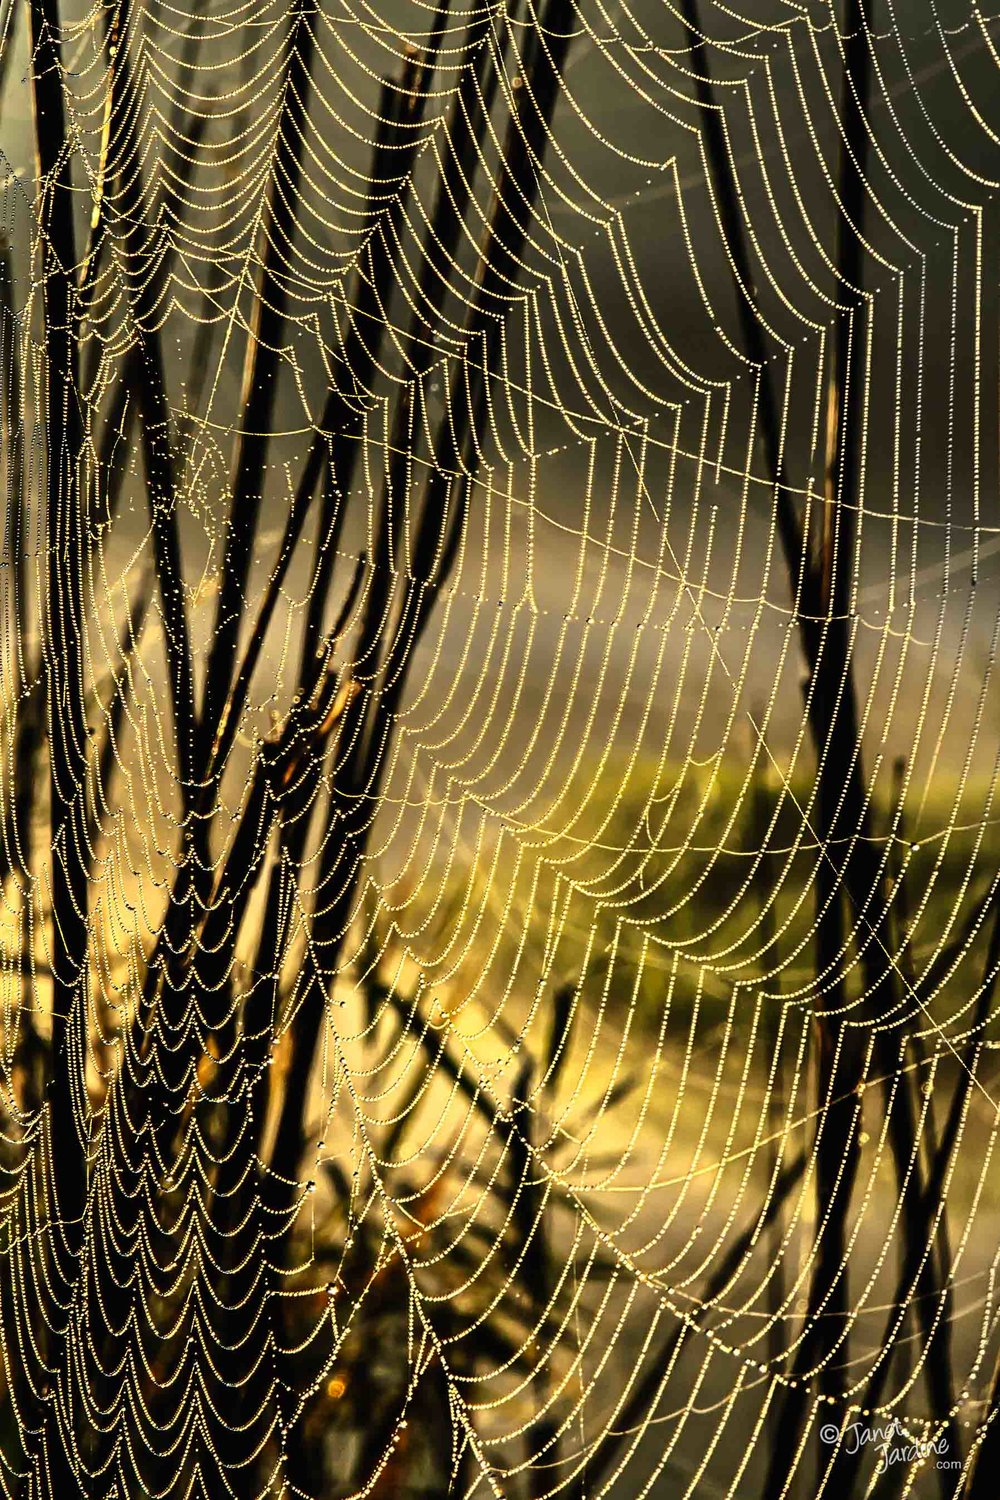 Spider-web_Photo_copyright_Janet_Jardine.jpg